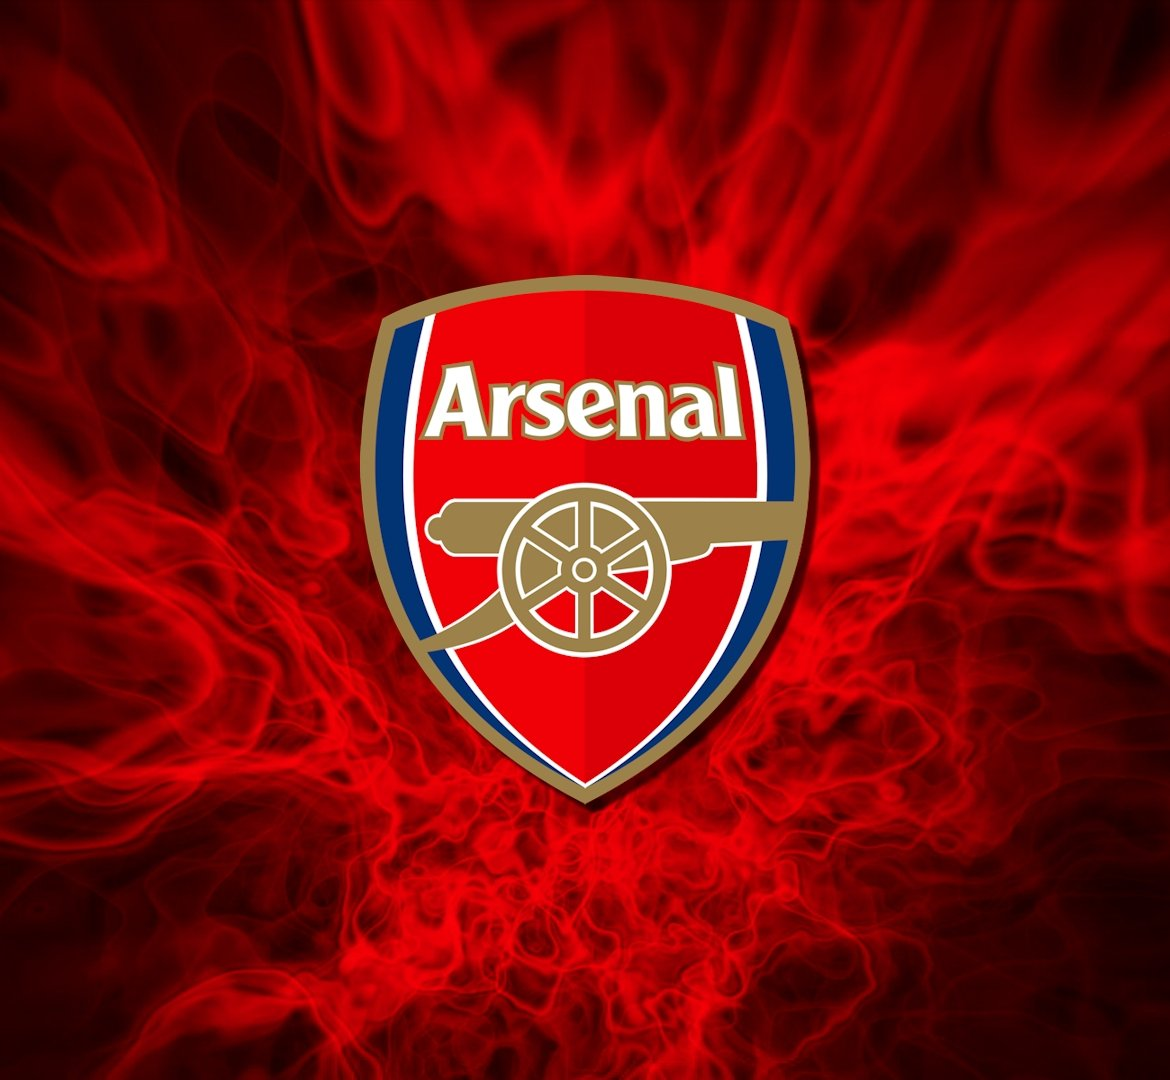 49+] Arsenal Wallpaper for iPhone Free on WallpaperSafari